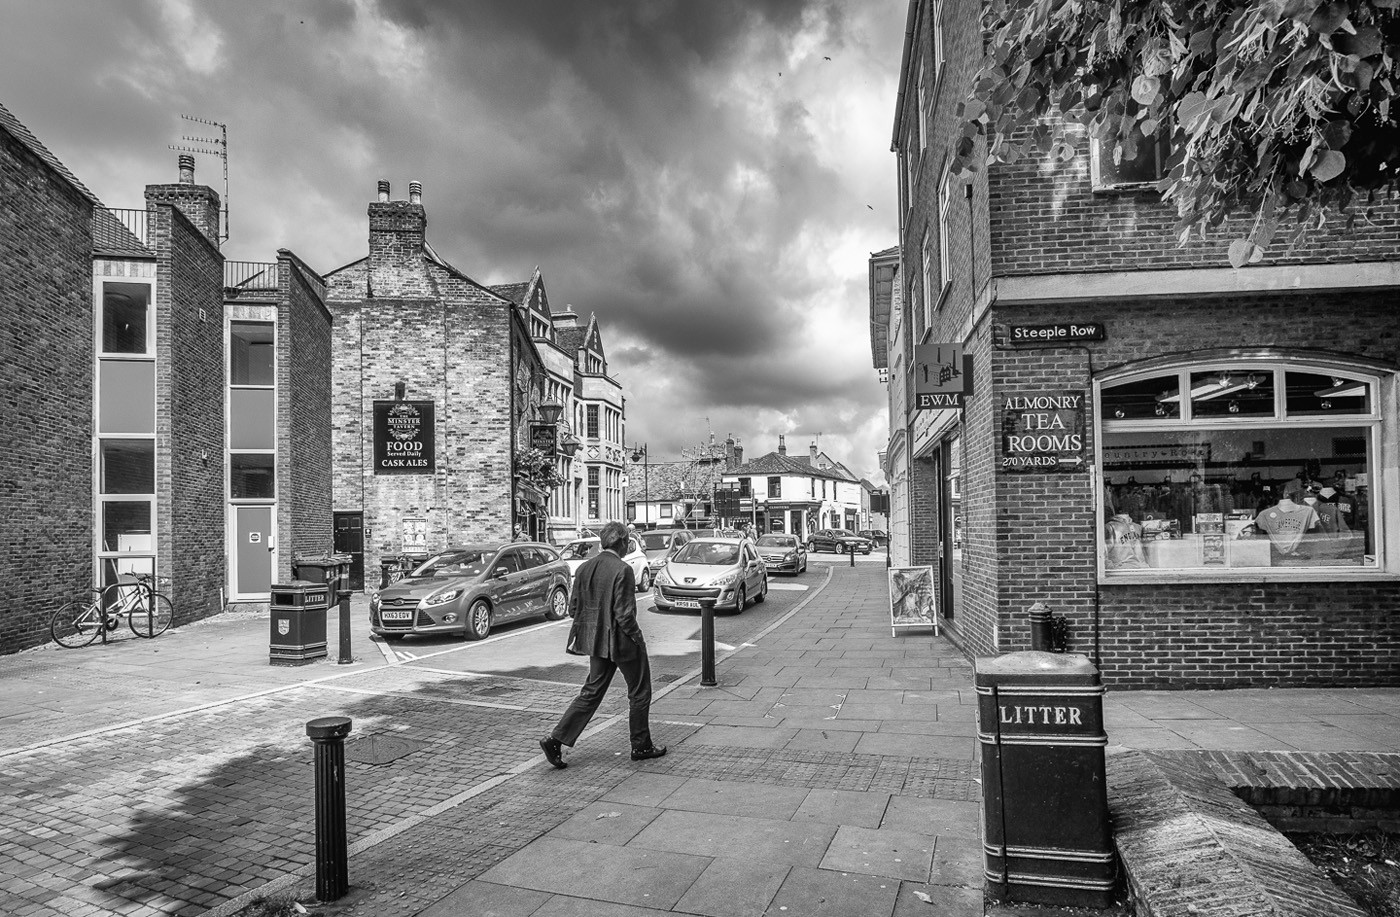 16 THE WAY TO ALMONRY TEA ROOMS by Tony Hill